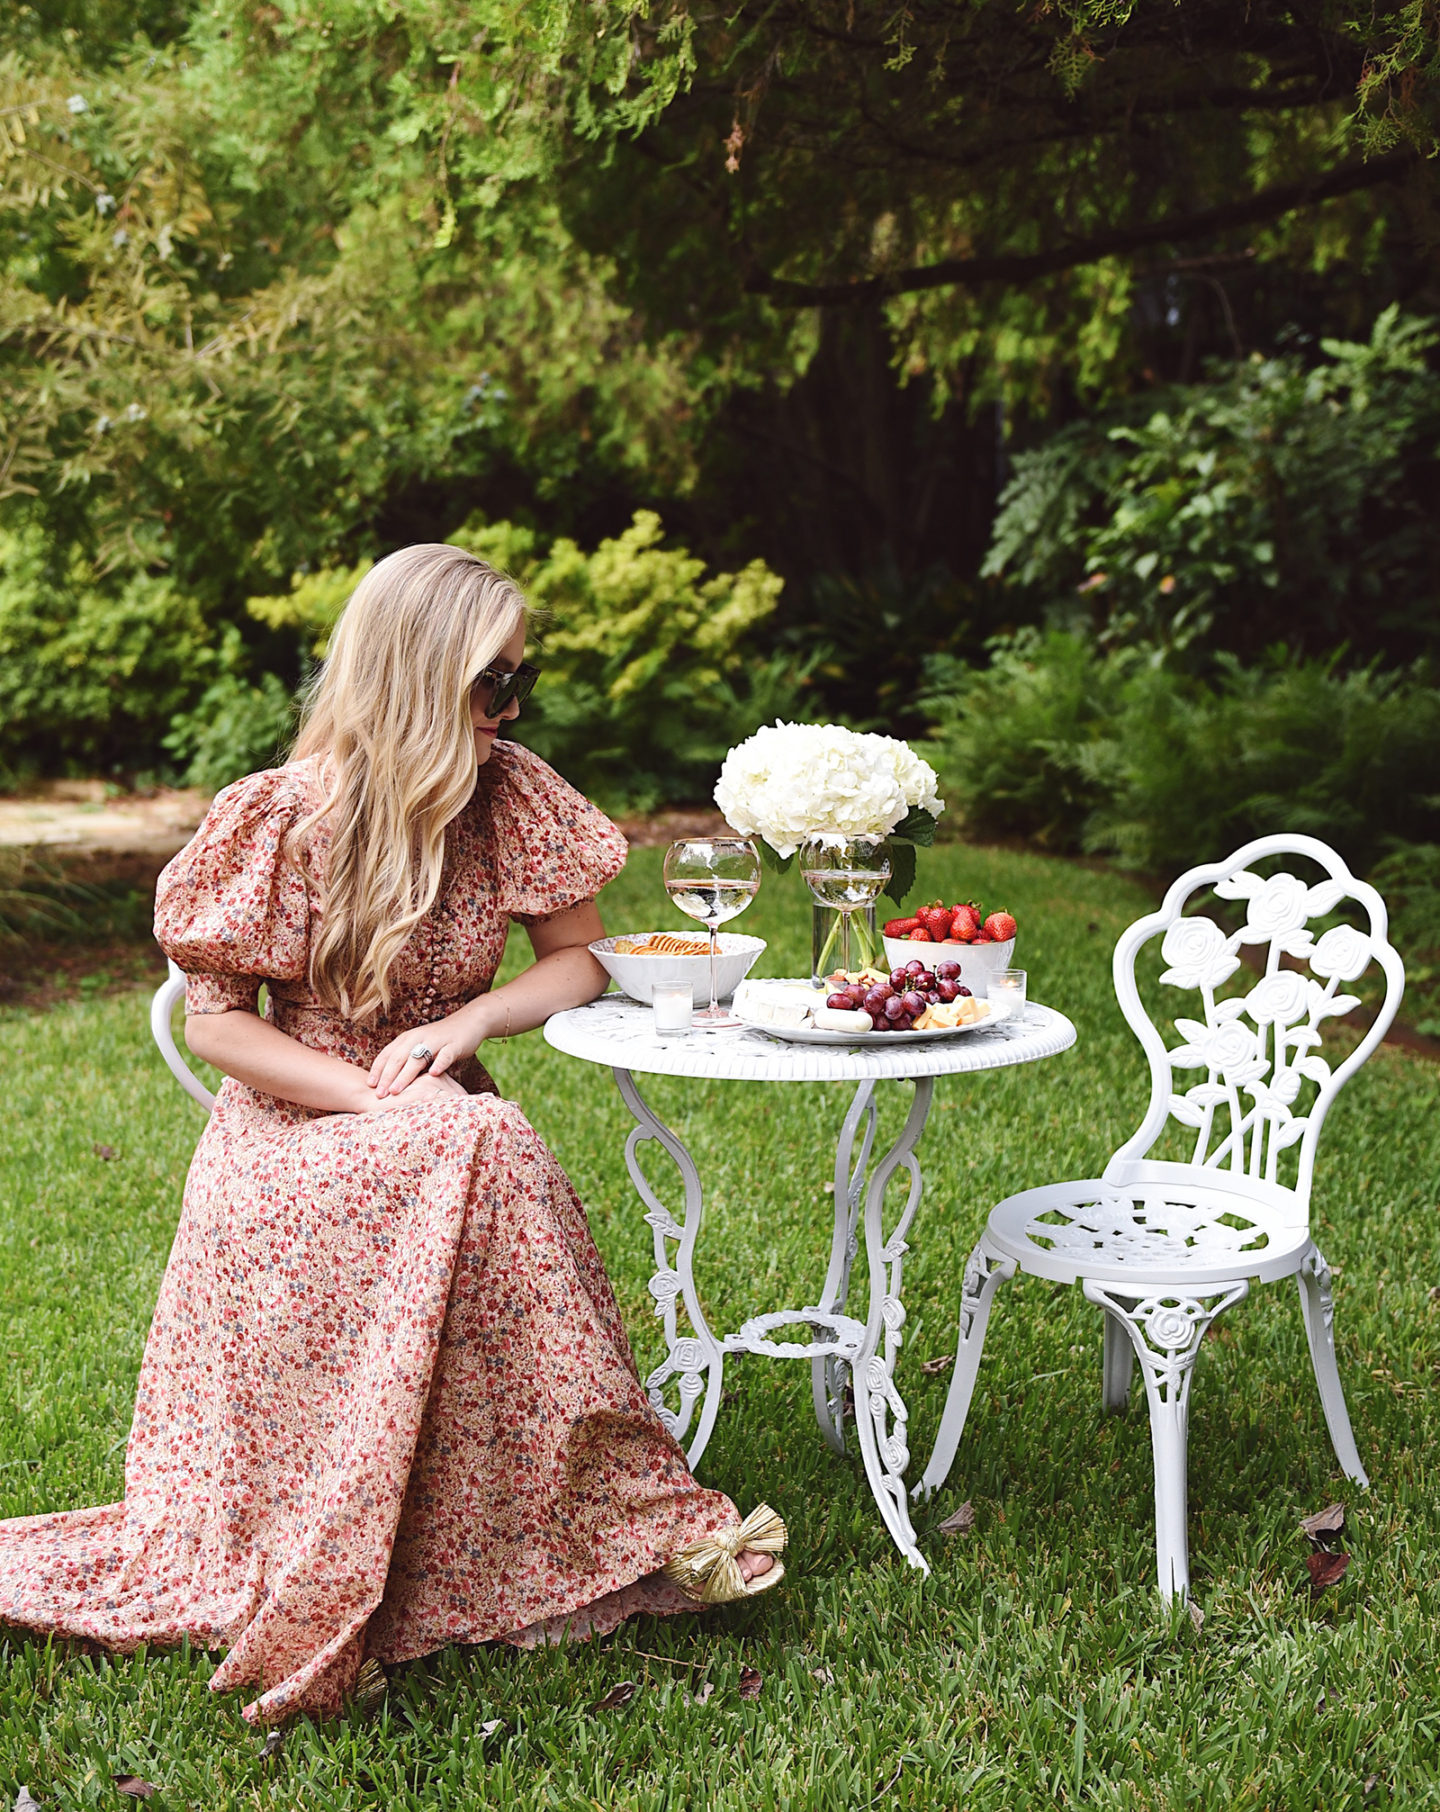 Lo-Murphy-Walmart-Cheeseboard-Date-Night-dallas-blogger-outdoor-furniture-Doen-Dress